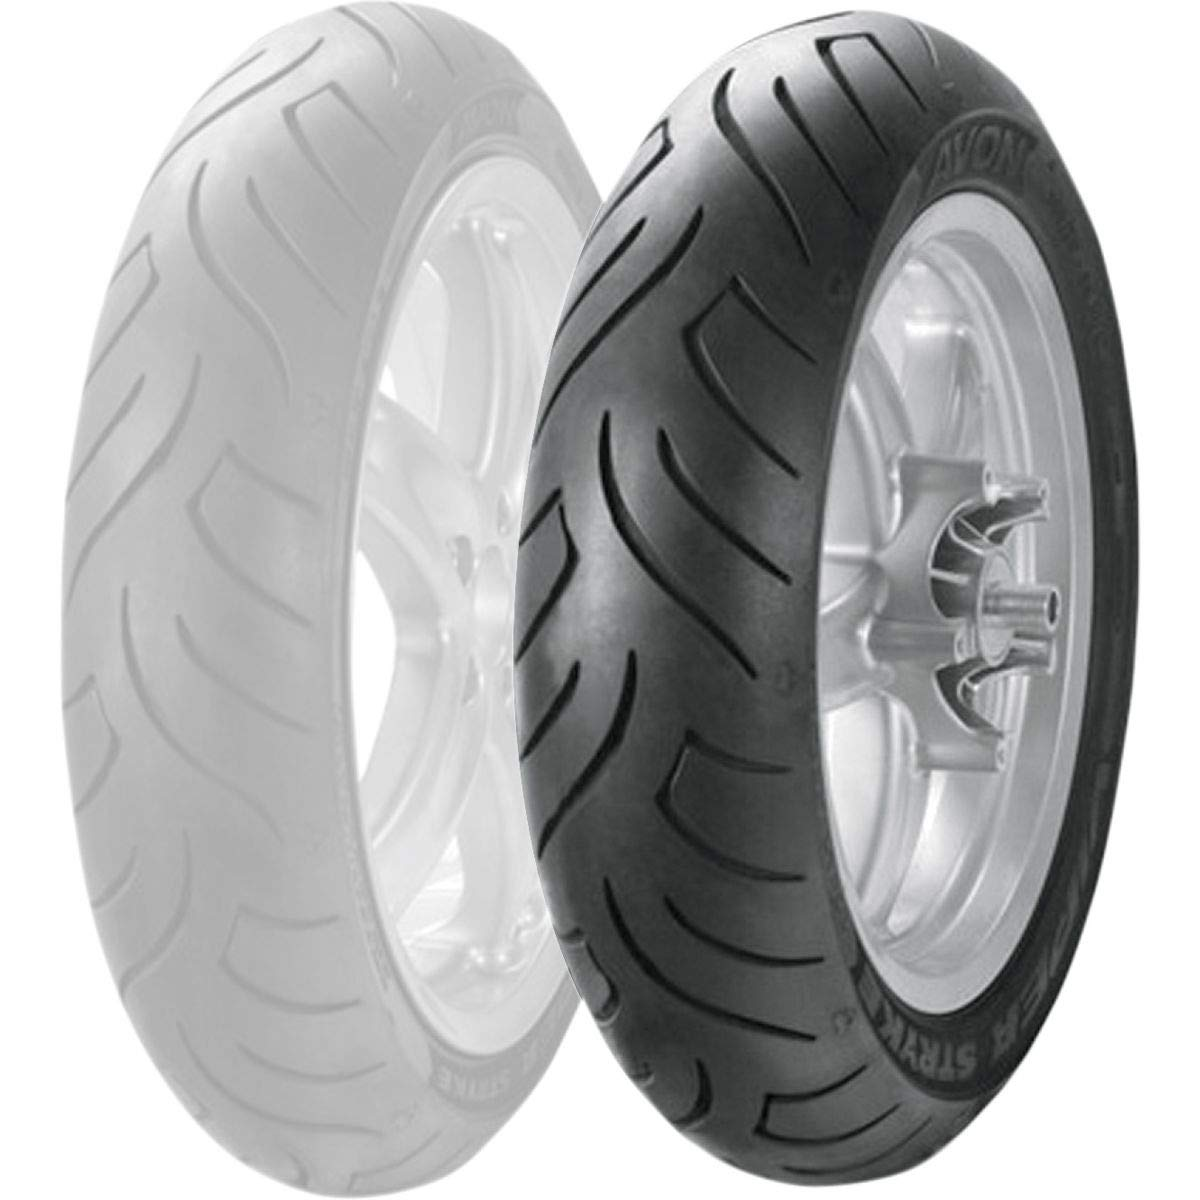 Amazon.com: Avon AM63 Viper Stryke Scooter Tire: Automotive